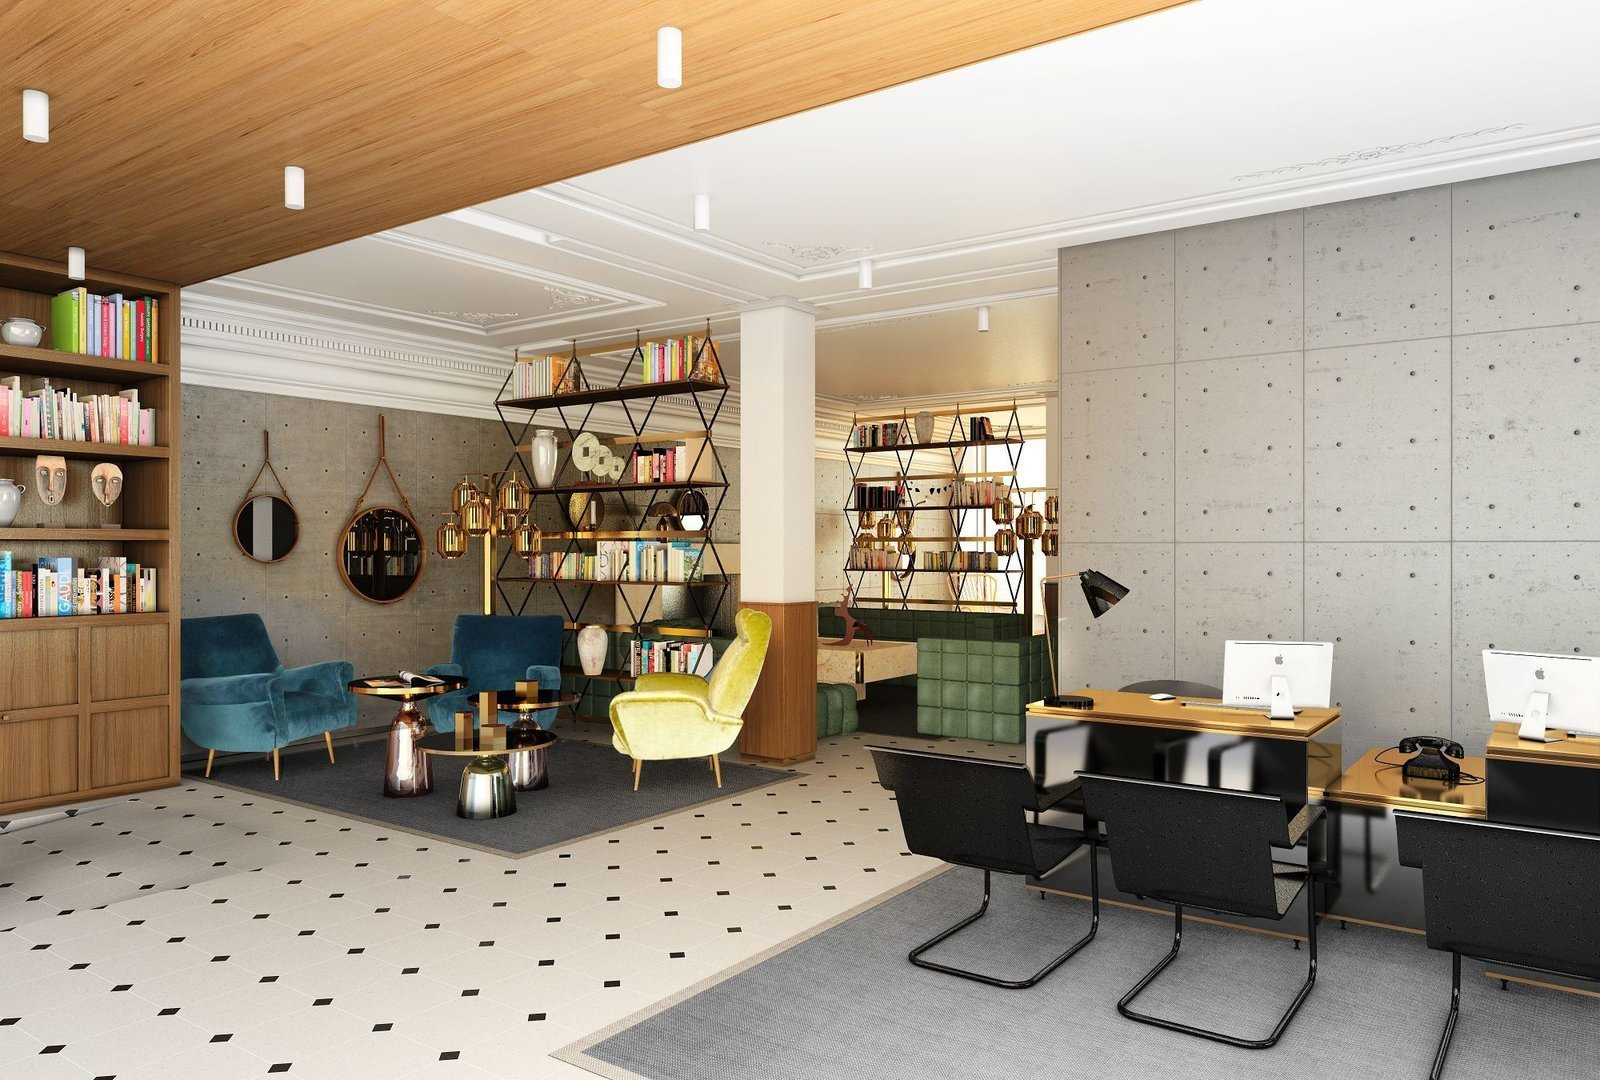 Living Room, Table Lighting, Desk, Coffee Tables, Rug Floor, Ceiling Lighting, Bookcase, and Chair  Photo 1 of 8 in A New Hotel in Paris That's Designed to Give Guests a Taste of Modern Parisian Living